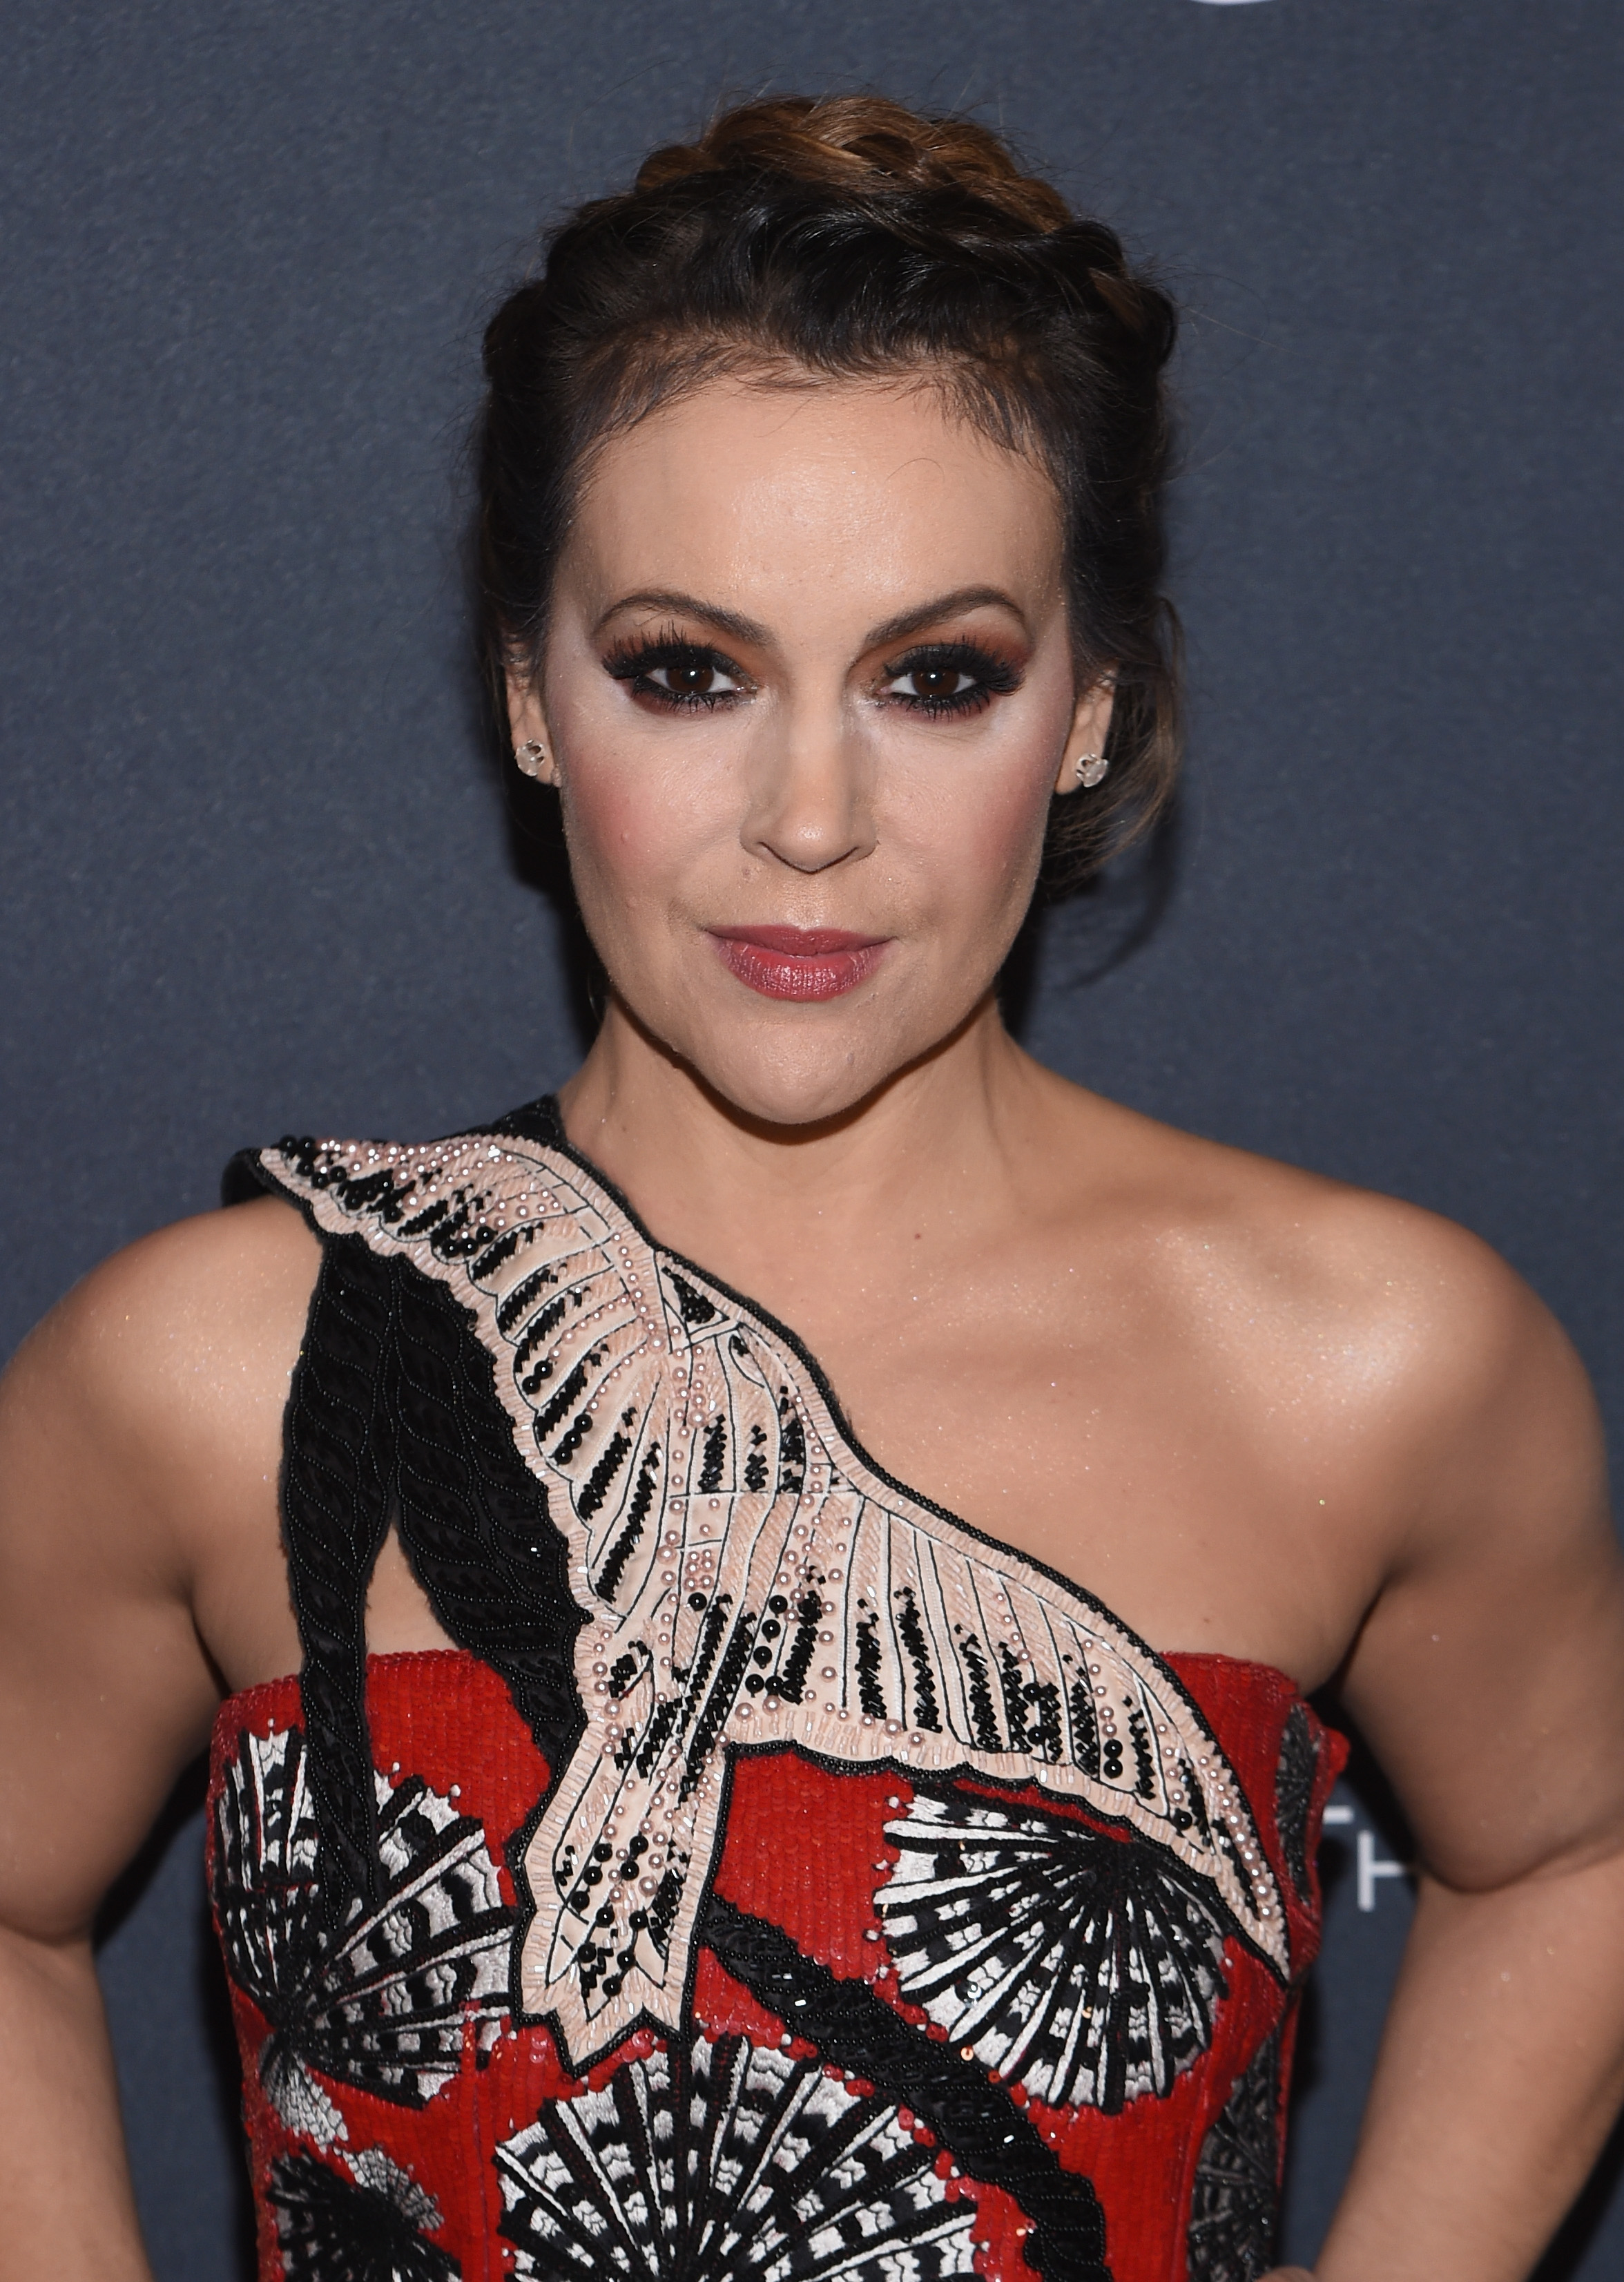 Actress Alyssa Milano attends The Weinstein Company's Pre-Oscar Dinner in partnership with Bvlgari and Grey Goose at Montage Beverly Hills on February 25, 2017, in Beverly Hills, California (Getty Images)